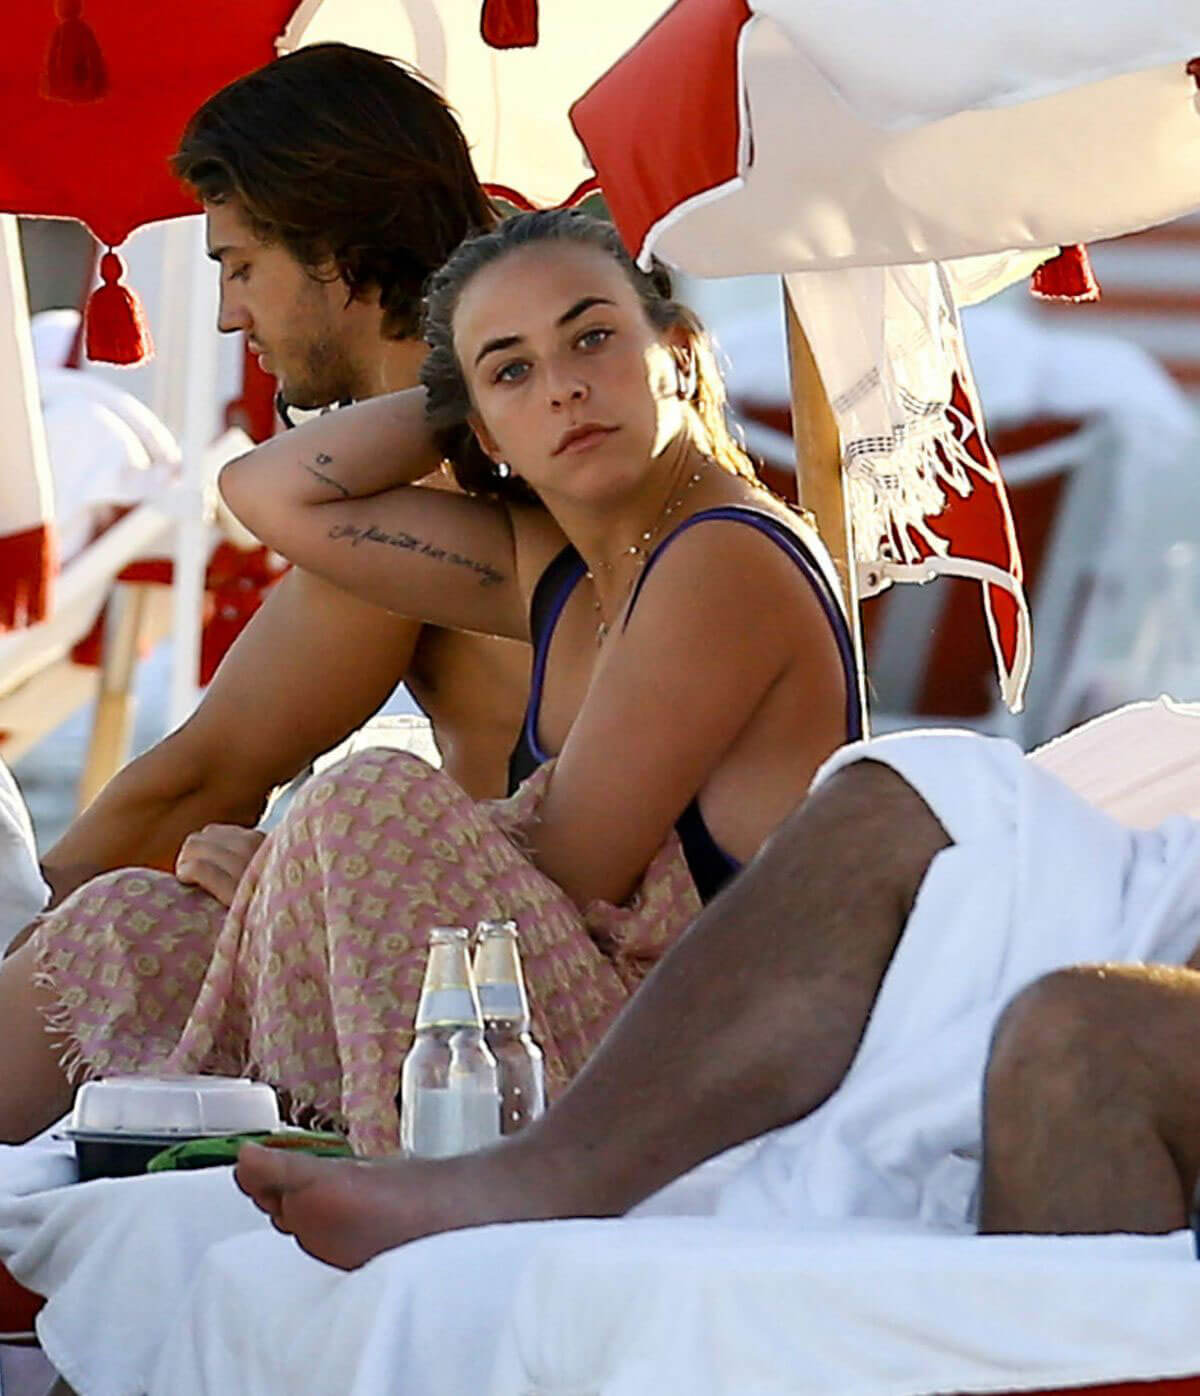 Chloe Green on The Beach in Miami